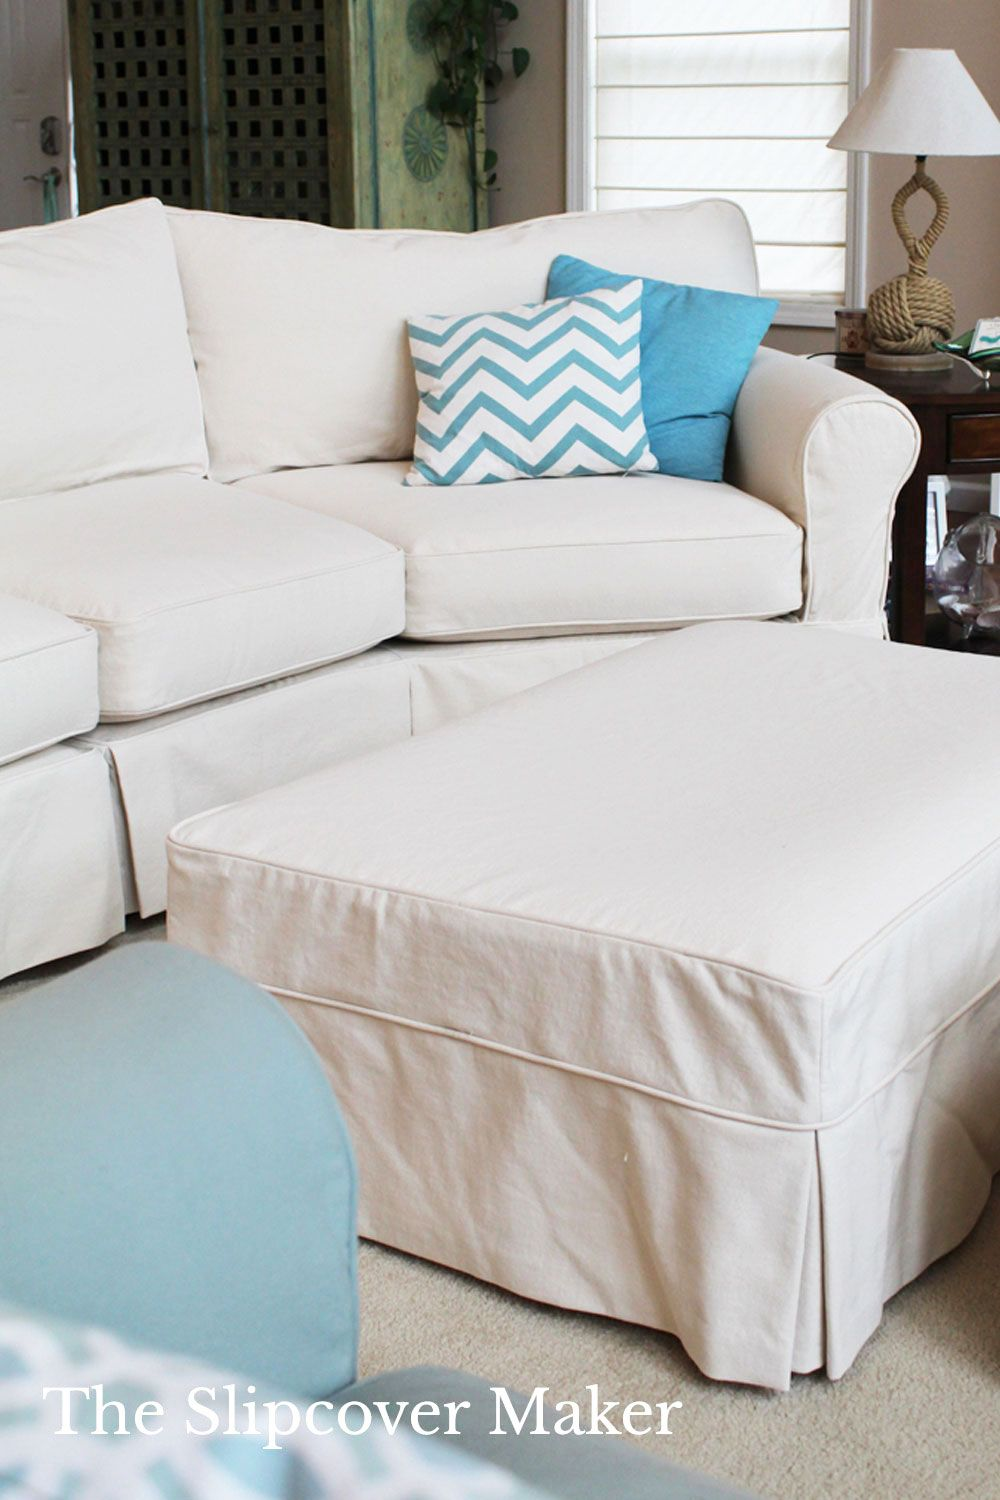 10 Simple Ottoman Slipcover Ideas For Diy Decorators In 2020 Ottoman Slipcover Slipcovers Ottoman Design